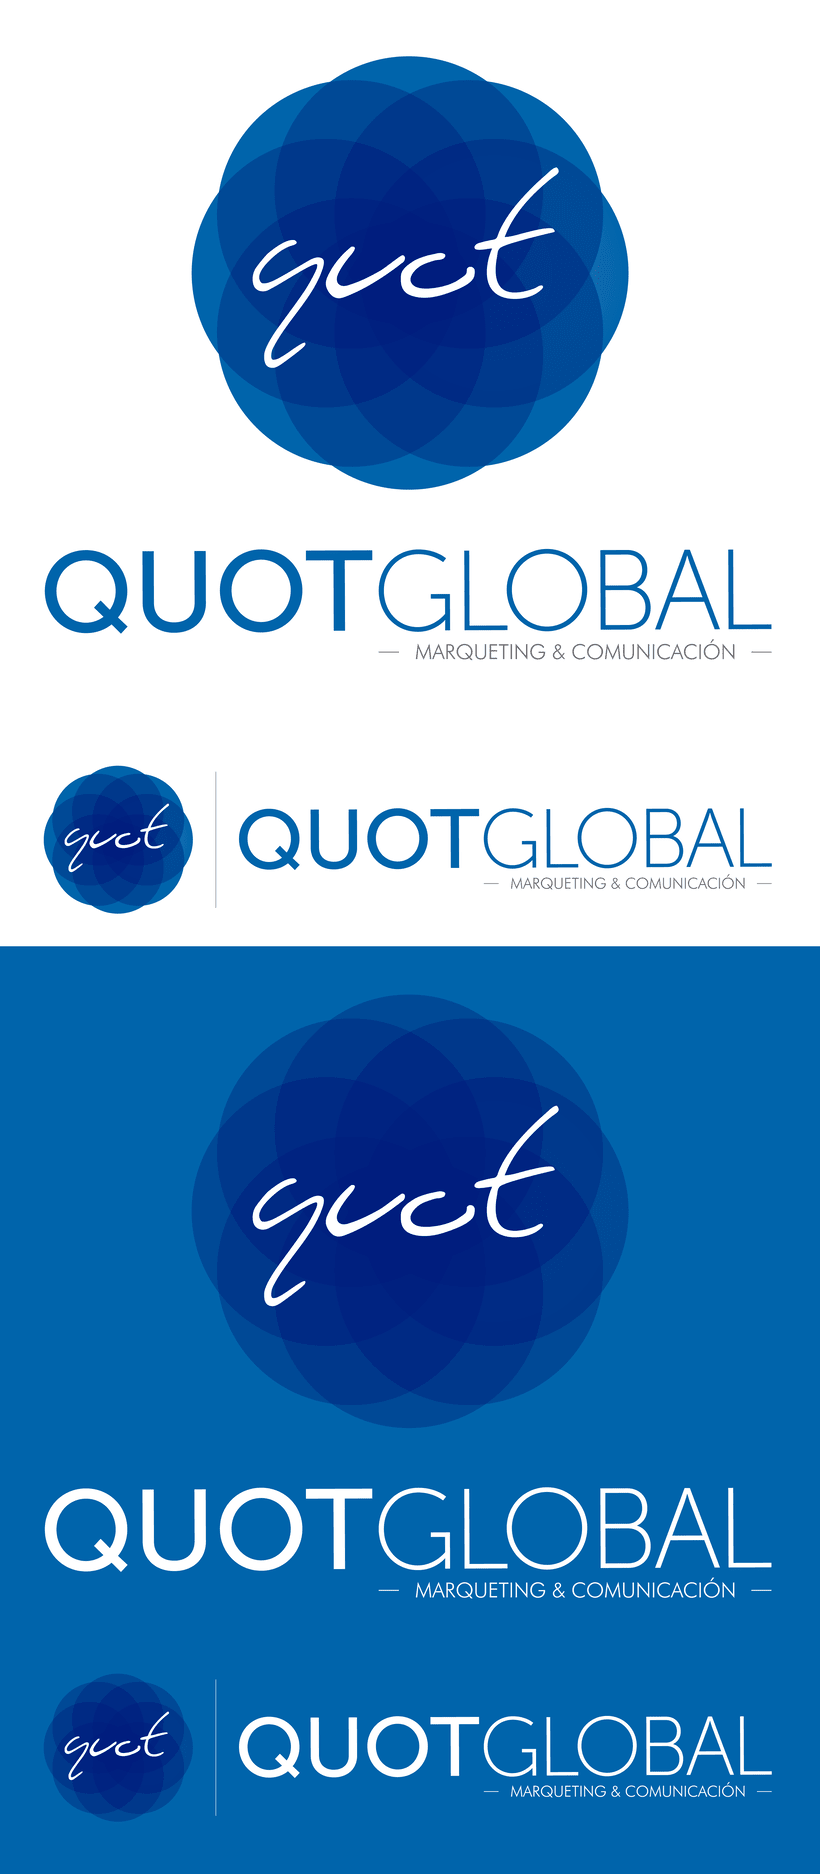 Identidad: QUOT Global (no terminado) 6